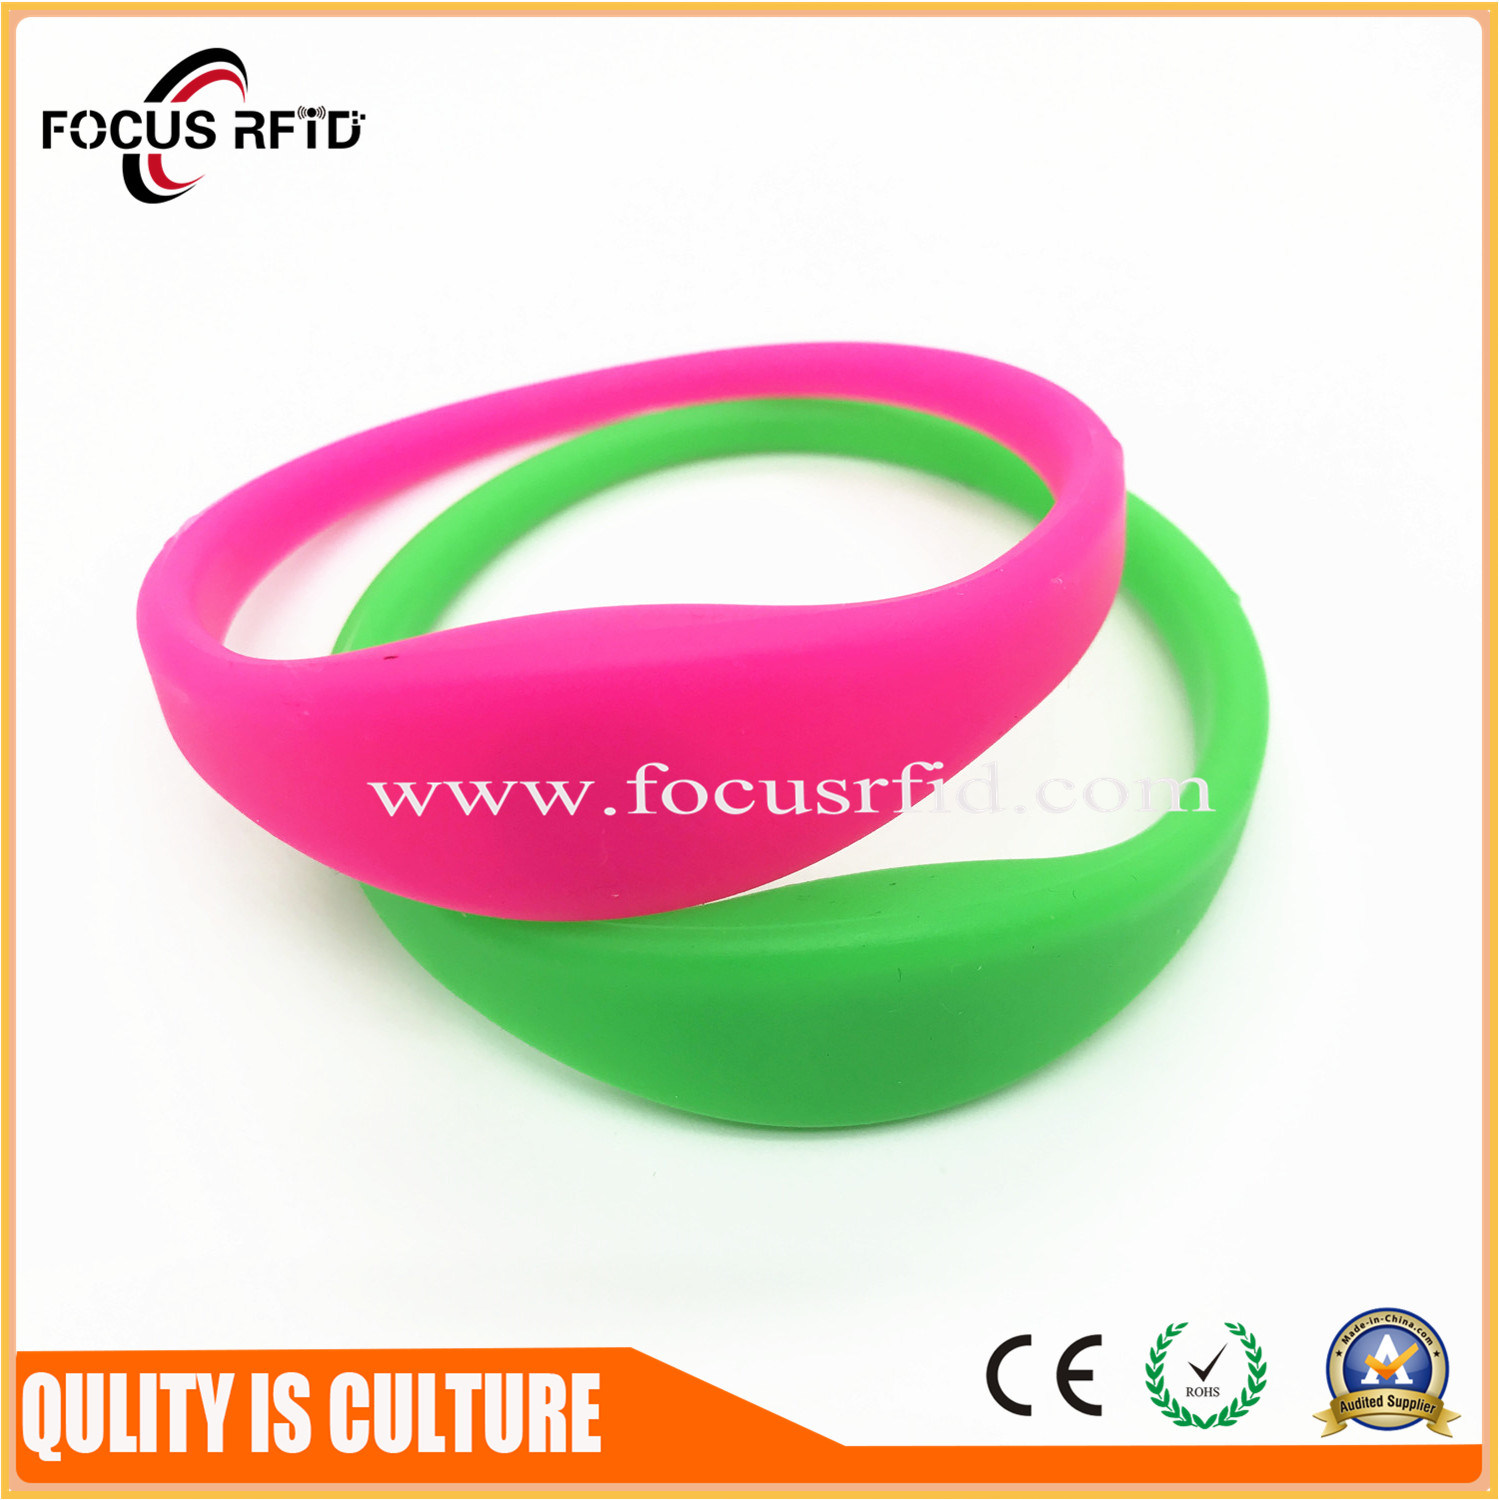 istock rfid of pictures picture more alarm bracelet free photo royalty stock